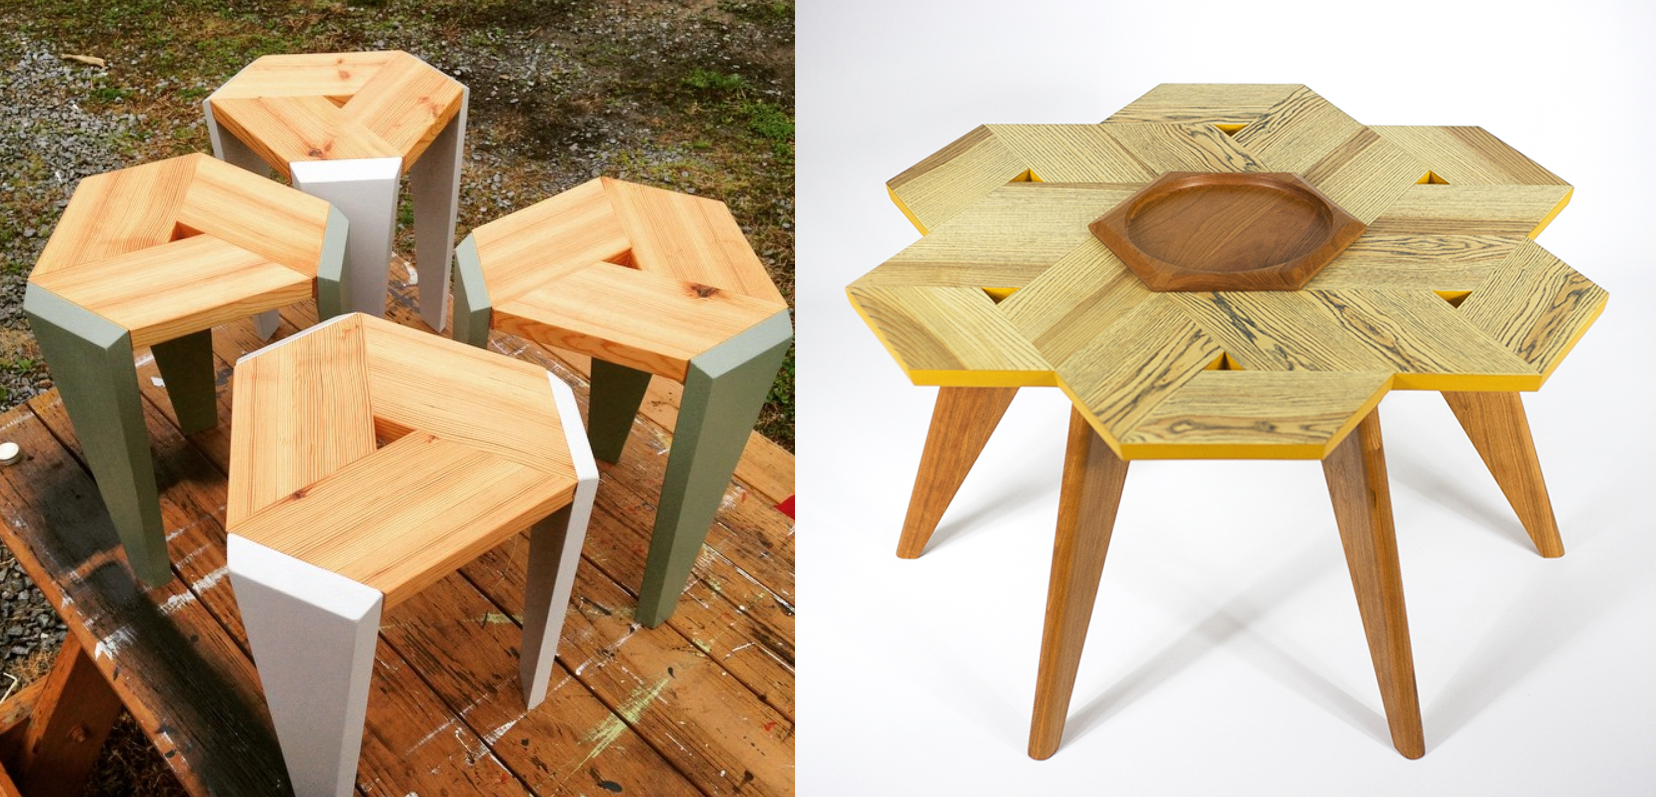 wooden stool and table designs that both incorporate a central hexagon of wood.